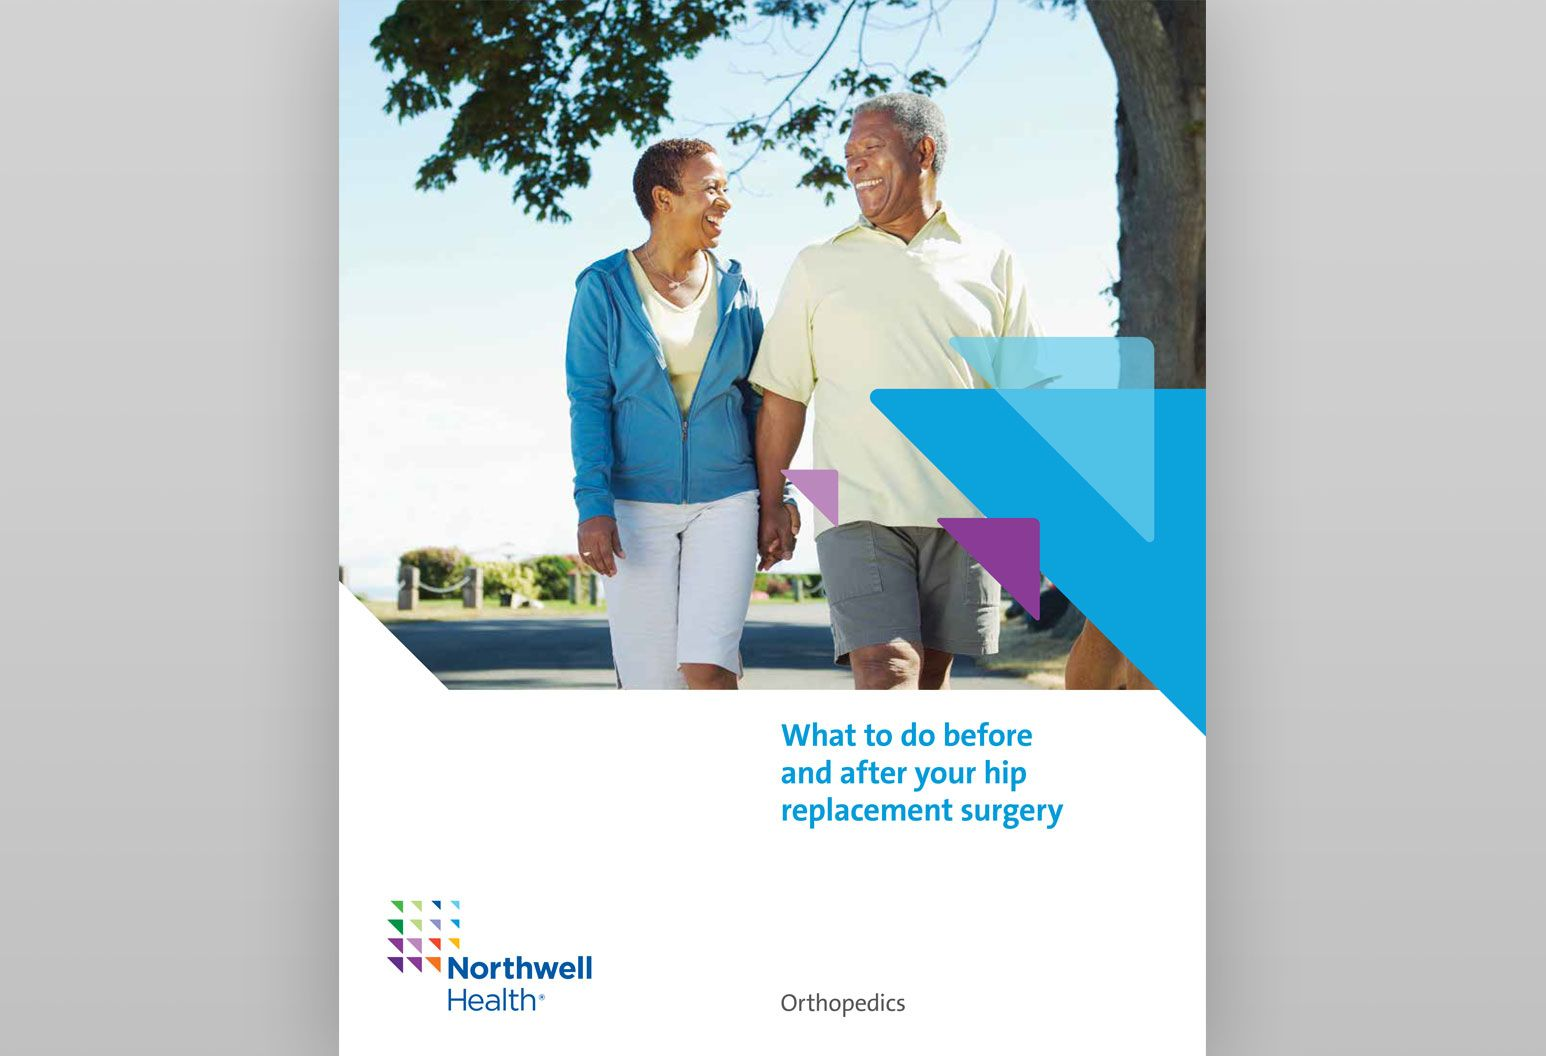 On the cover of a booklet about what to do before and after your hip surgery, there is an elderly couple holding hands and smiling at each other. They are walking outside and a tree is in the background.